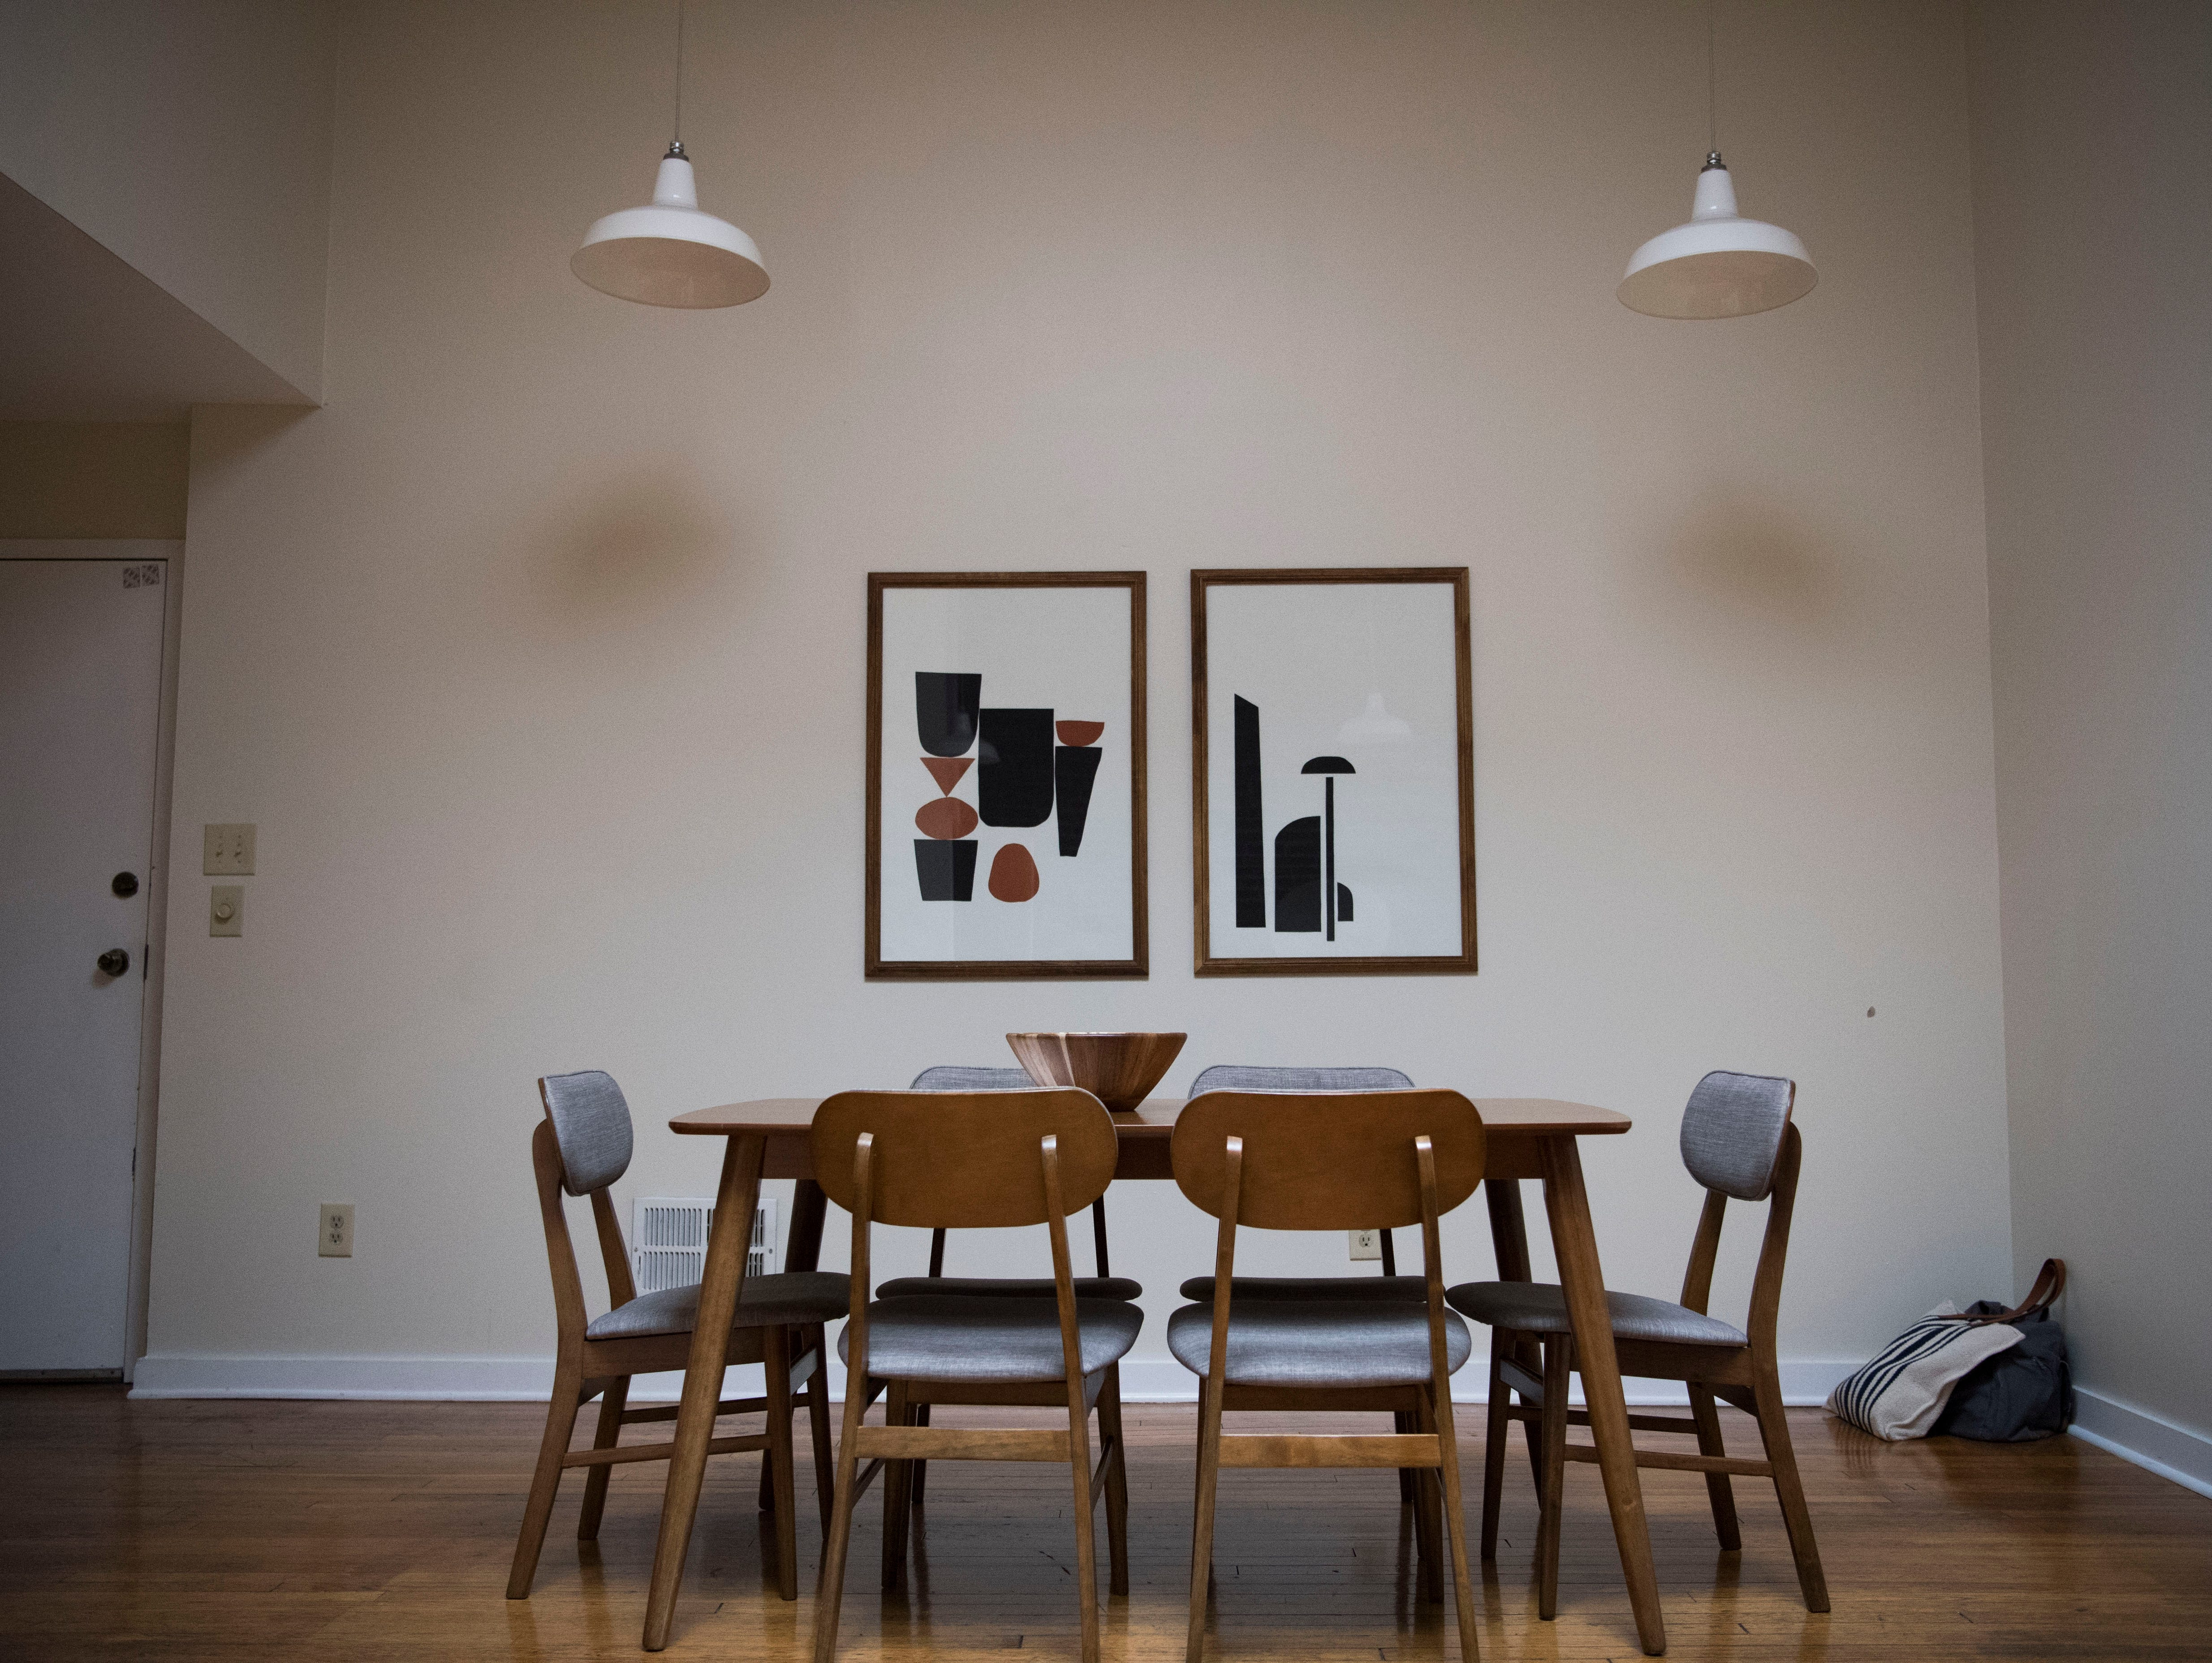 A dining area in one of 14 short-term rental properties Dylan and Suzanne Robinson manage in their company Knox Staytion, in Old City Tuesday, Feb. 5, 2019.